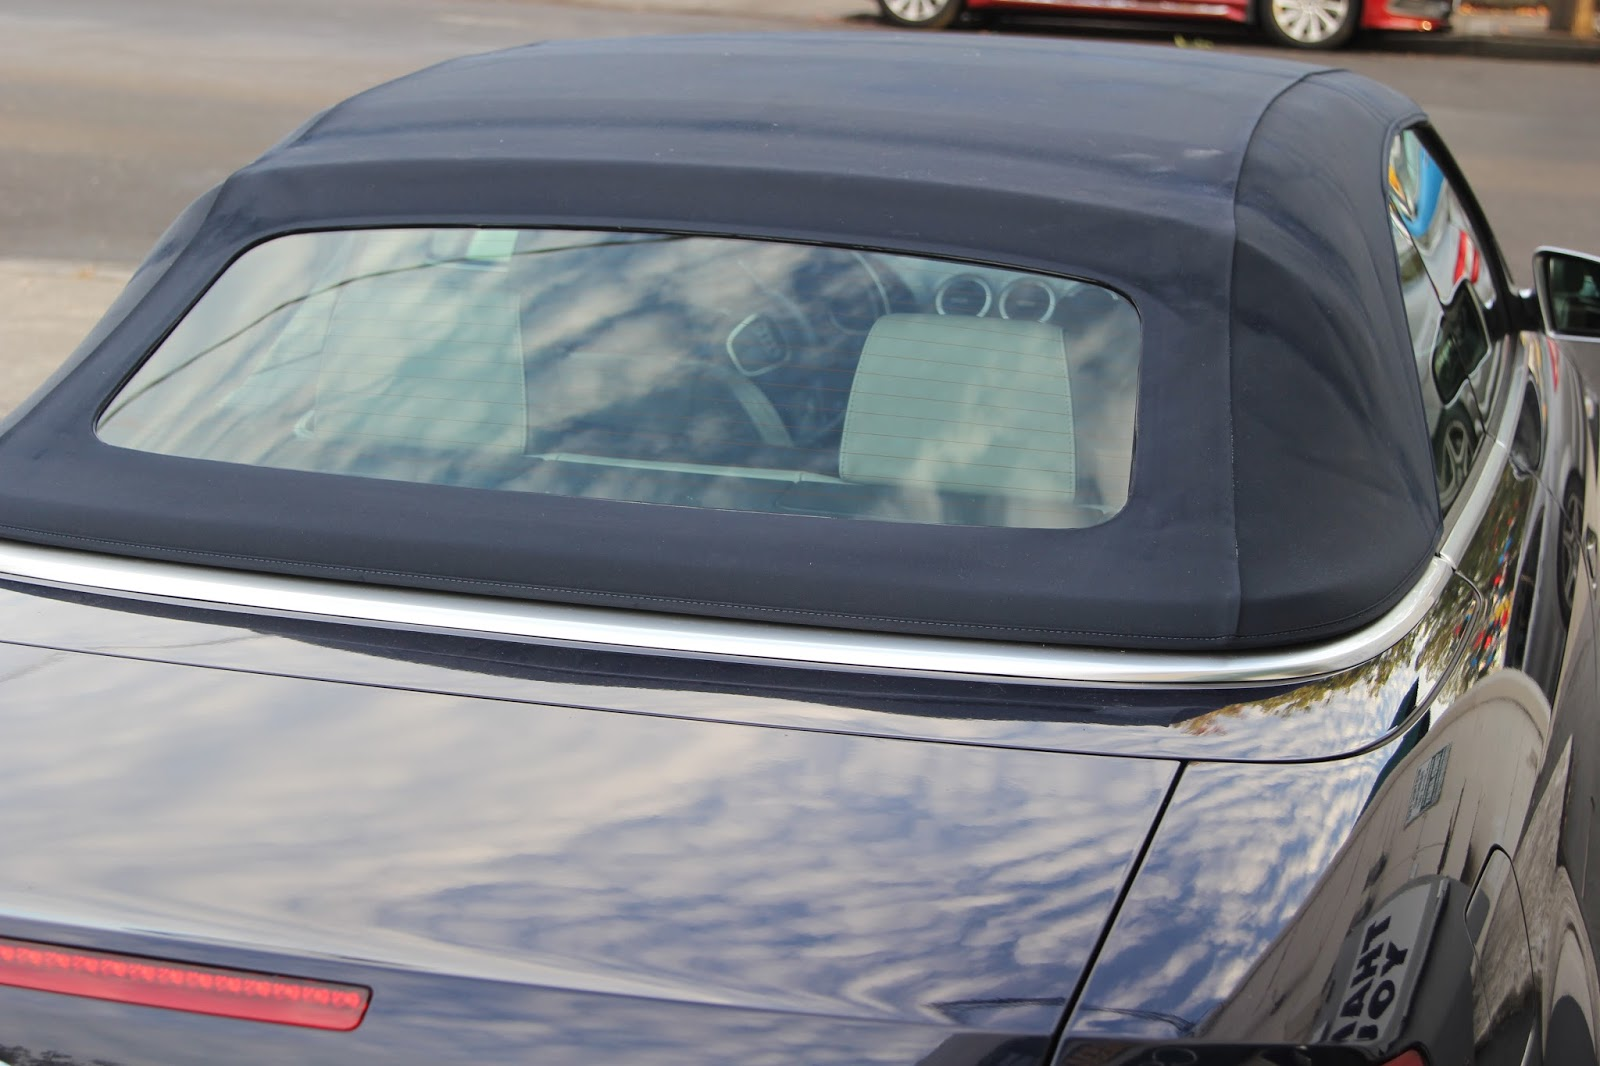 Audi Convertible Back Window Repair By Cooks Upholstery Redwood City 650 364 0923